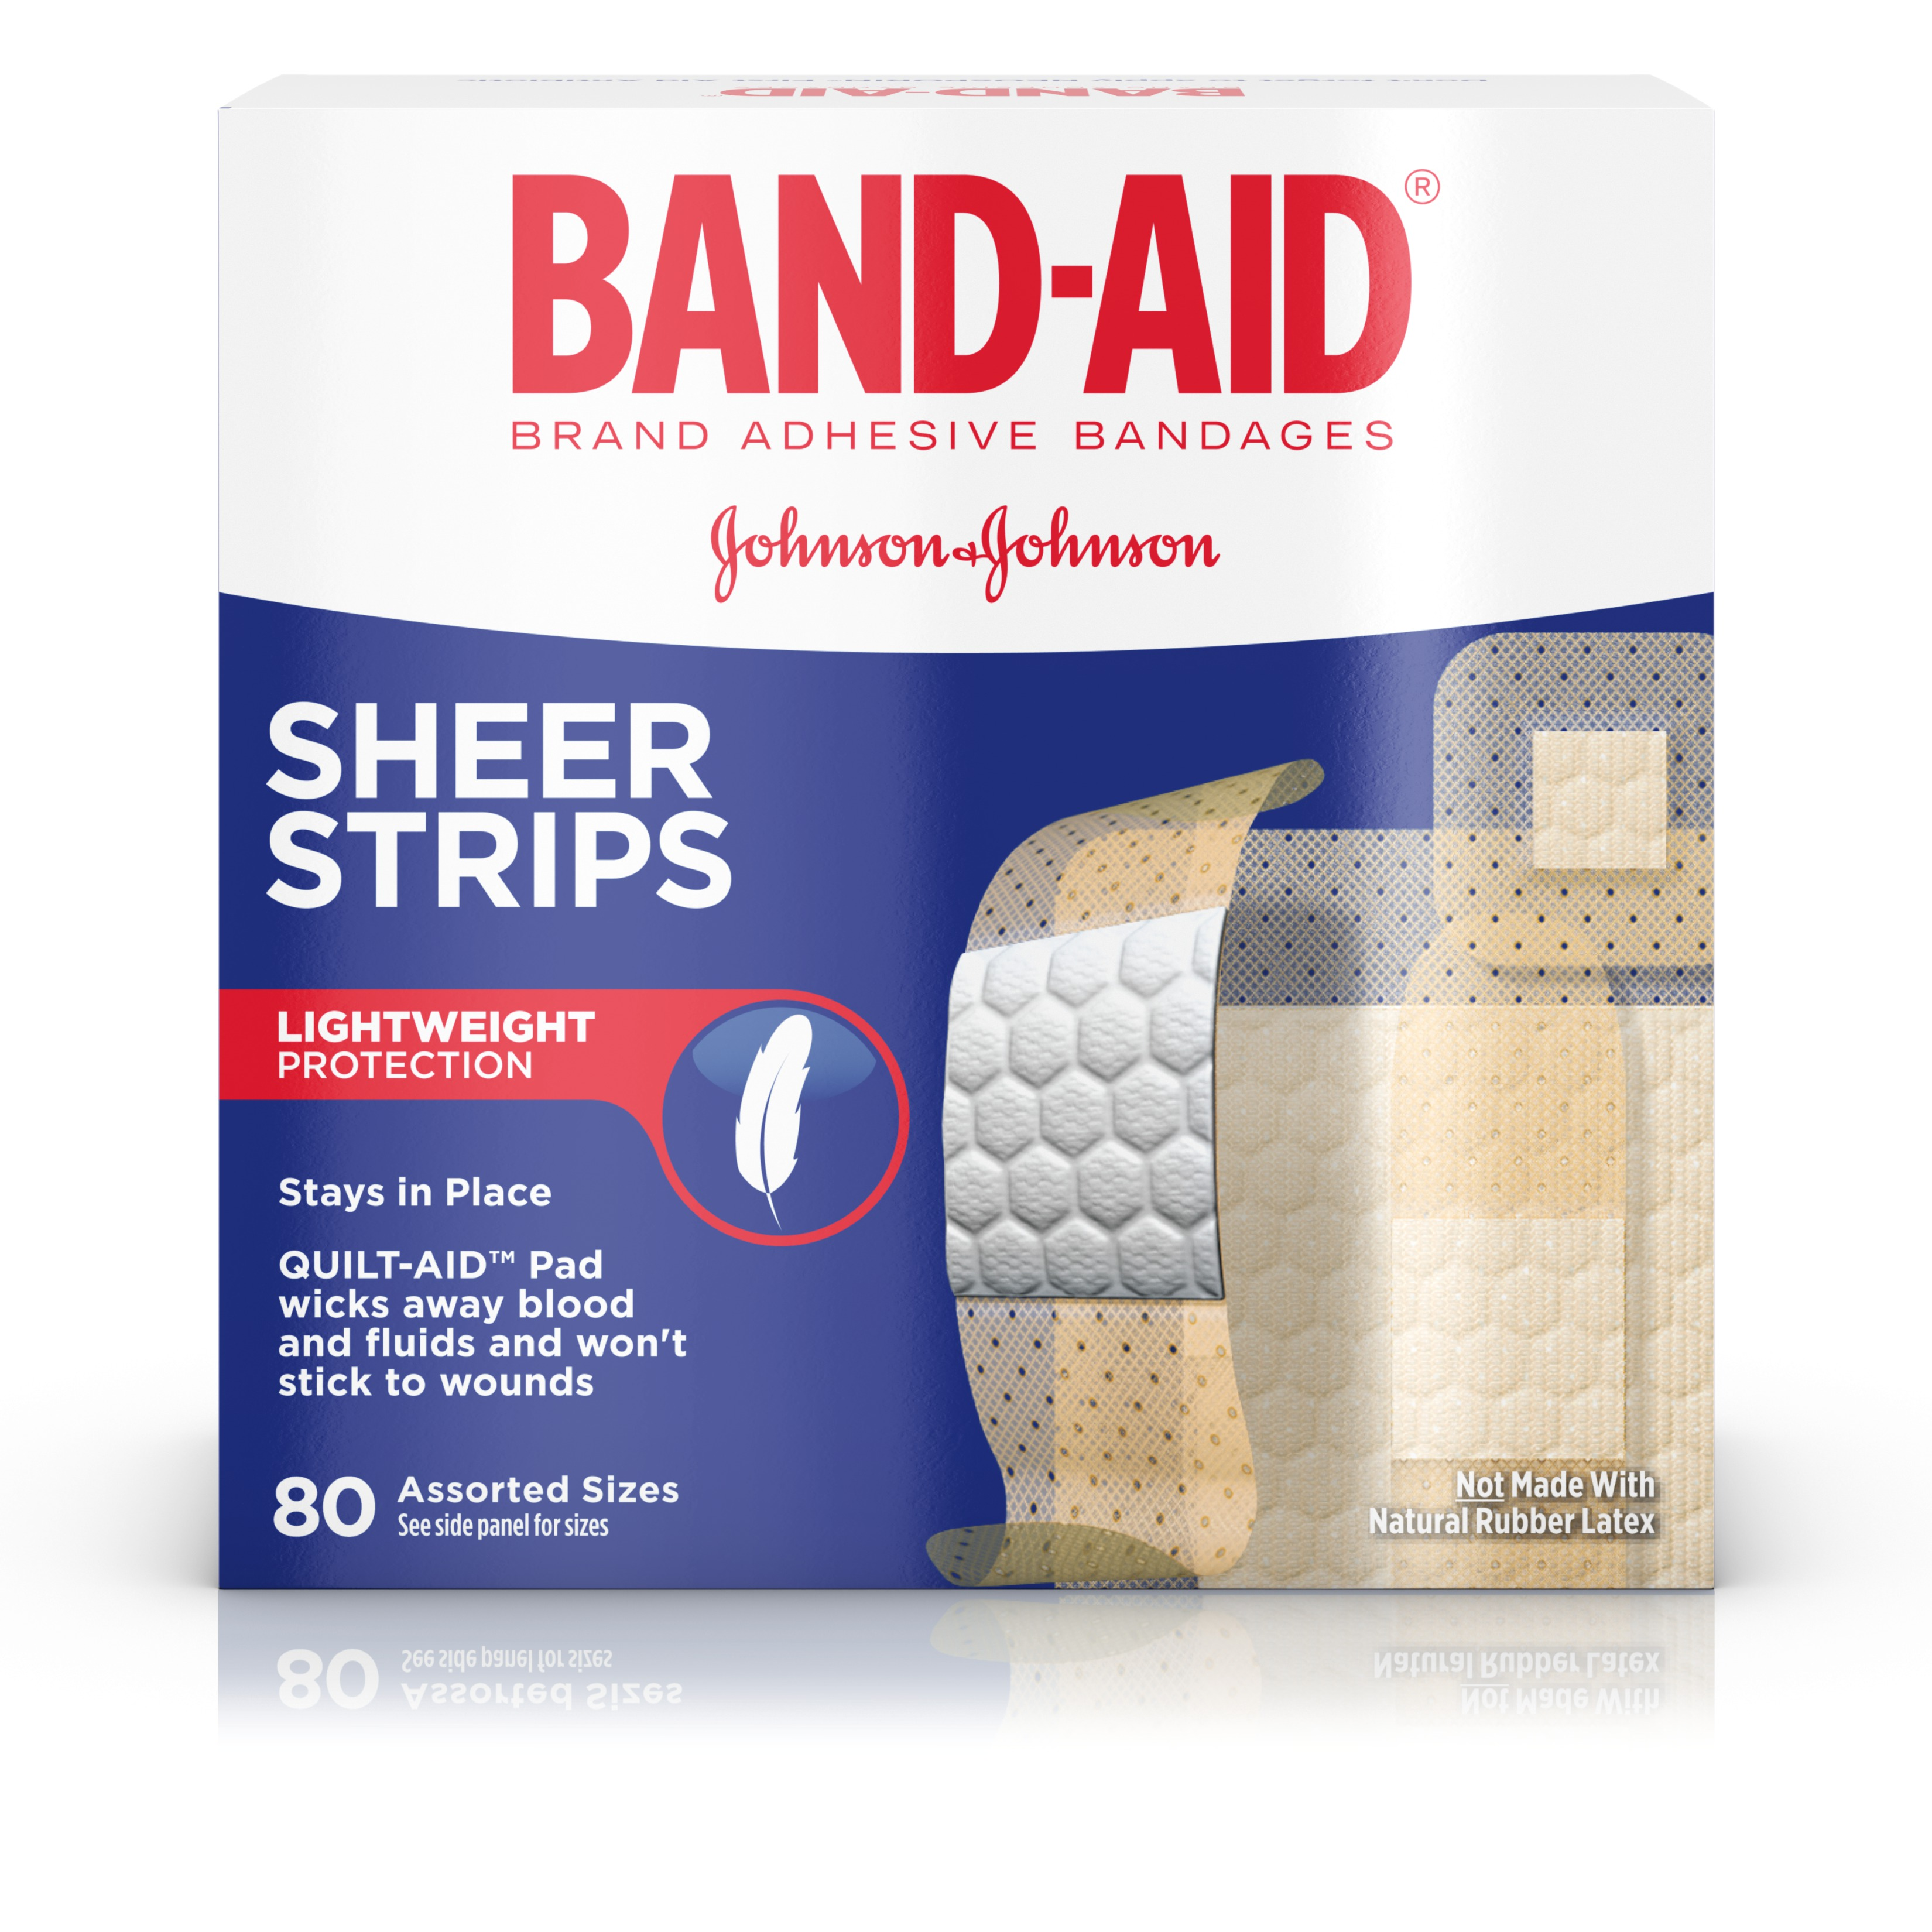 BAND-AID Brand Sheer Strips Adhesive Bandages, Basic Care Assorted Sizes, 80 Count by Johnson & Johnson